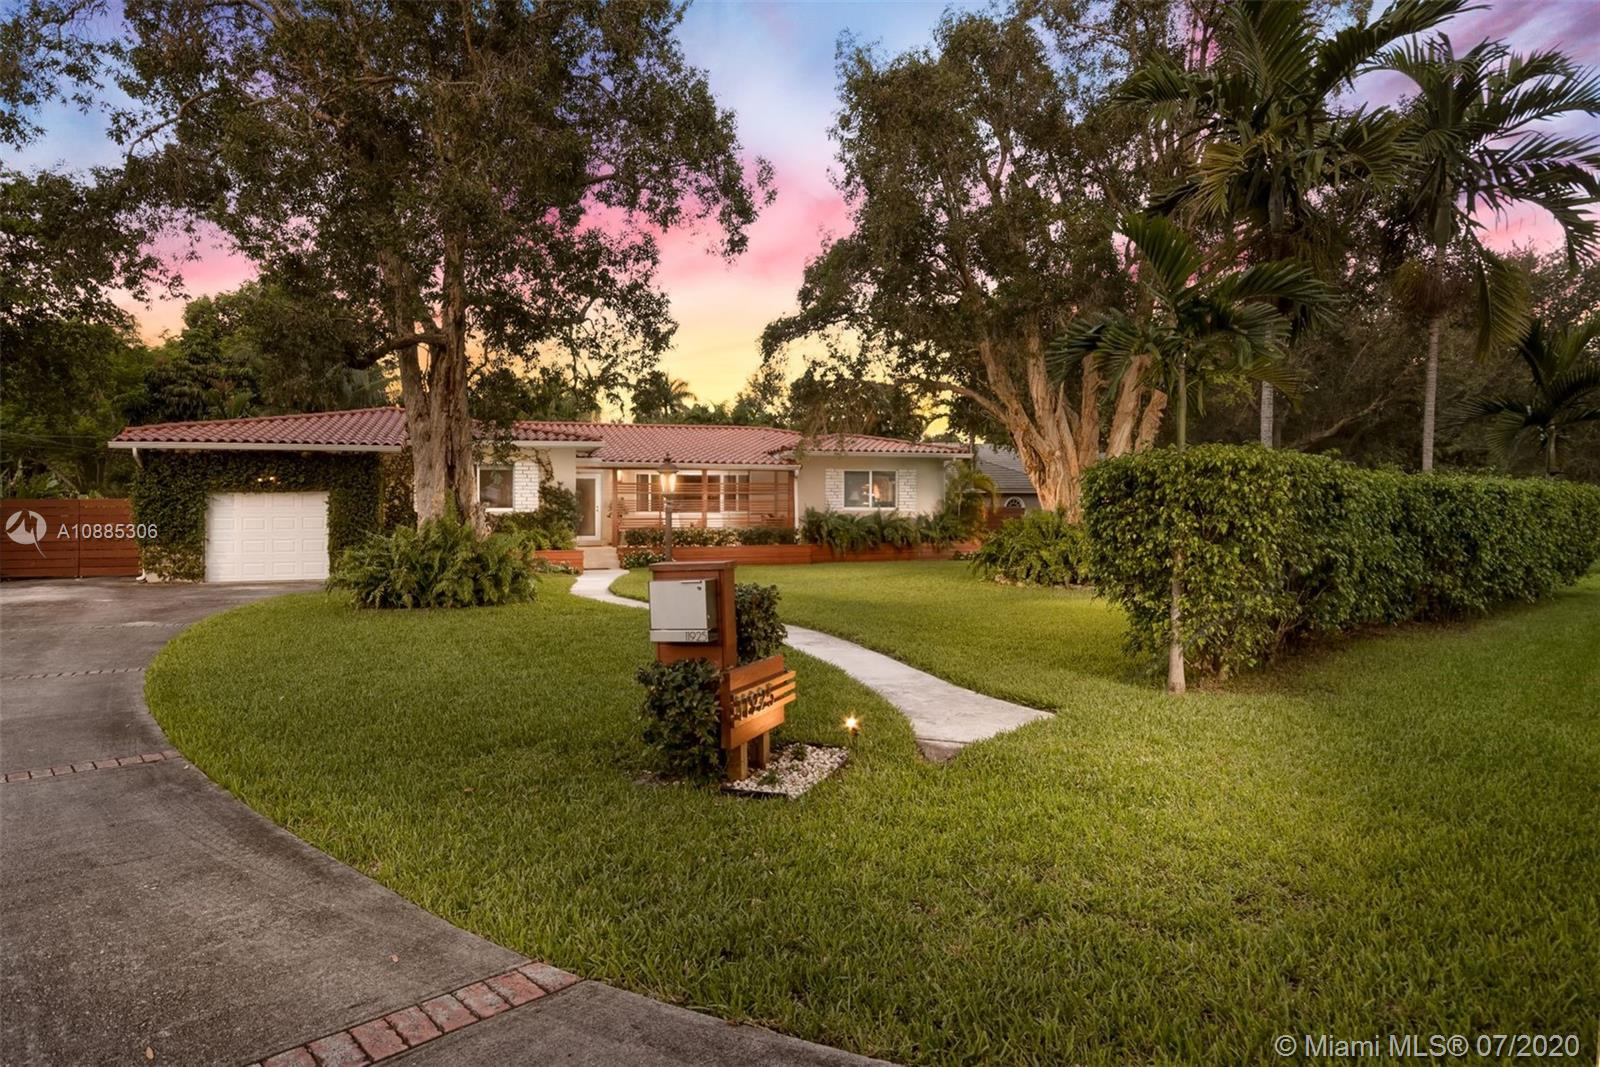 11925  Griffing Blvd  For Sale A10885306, FL